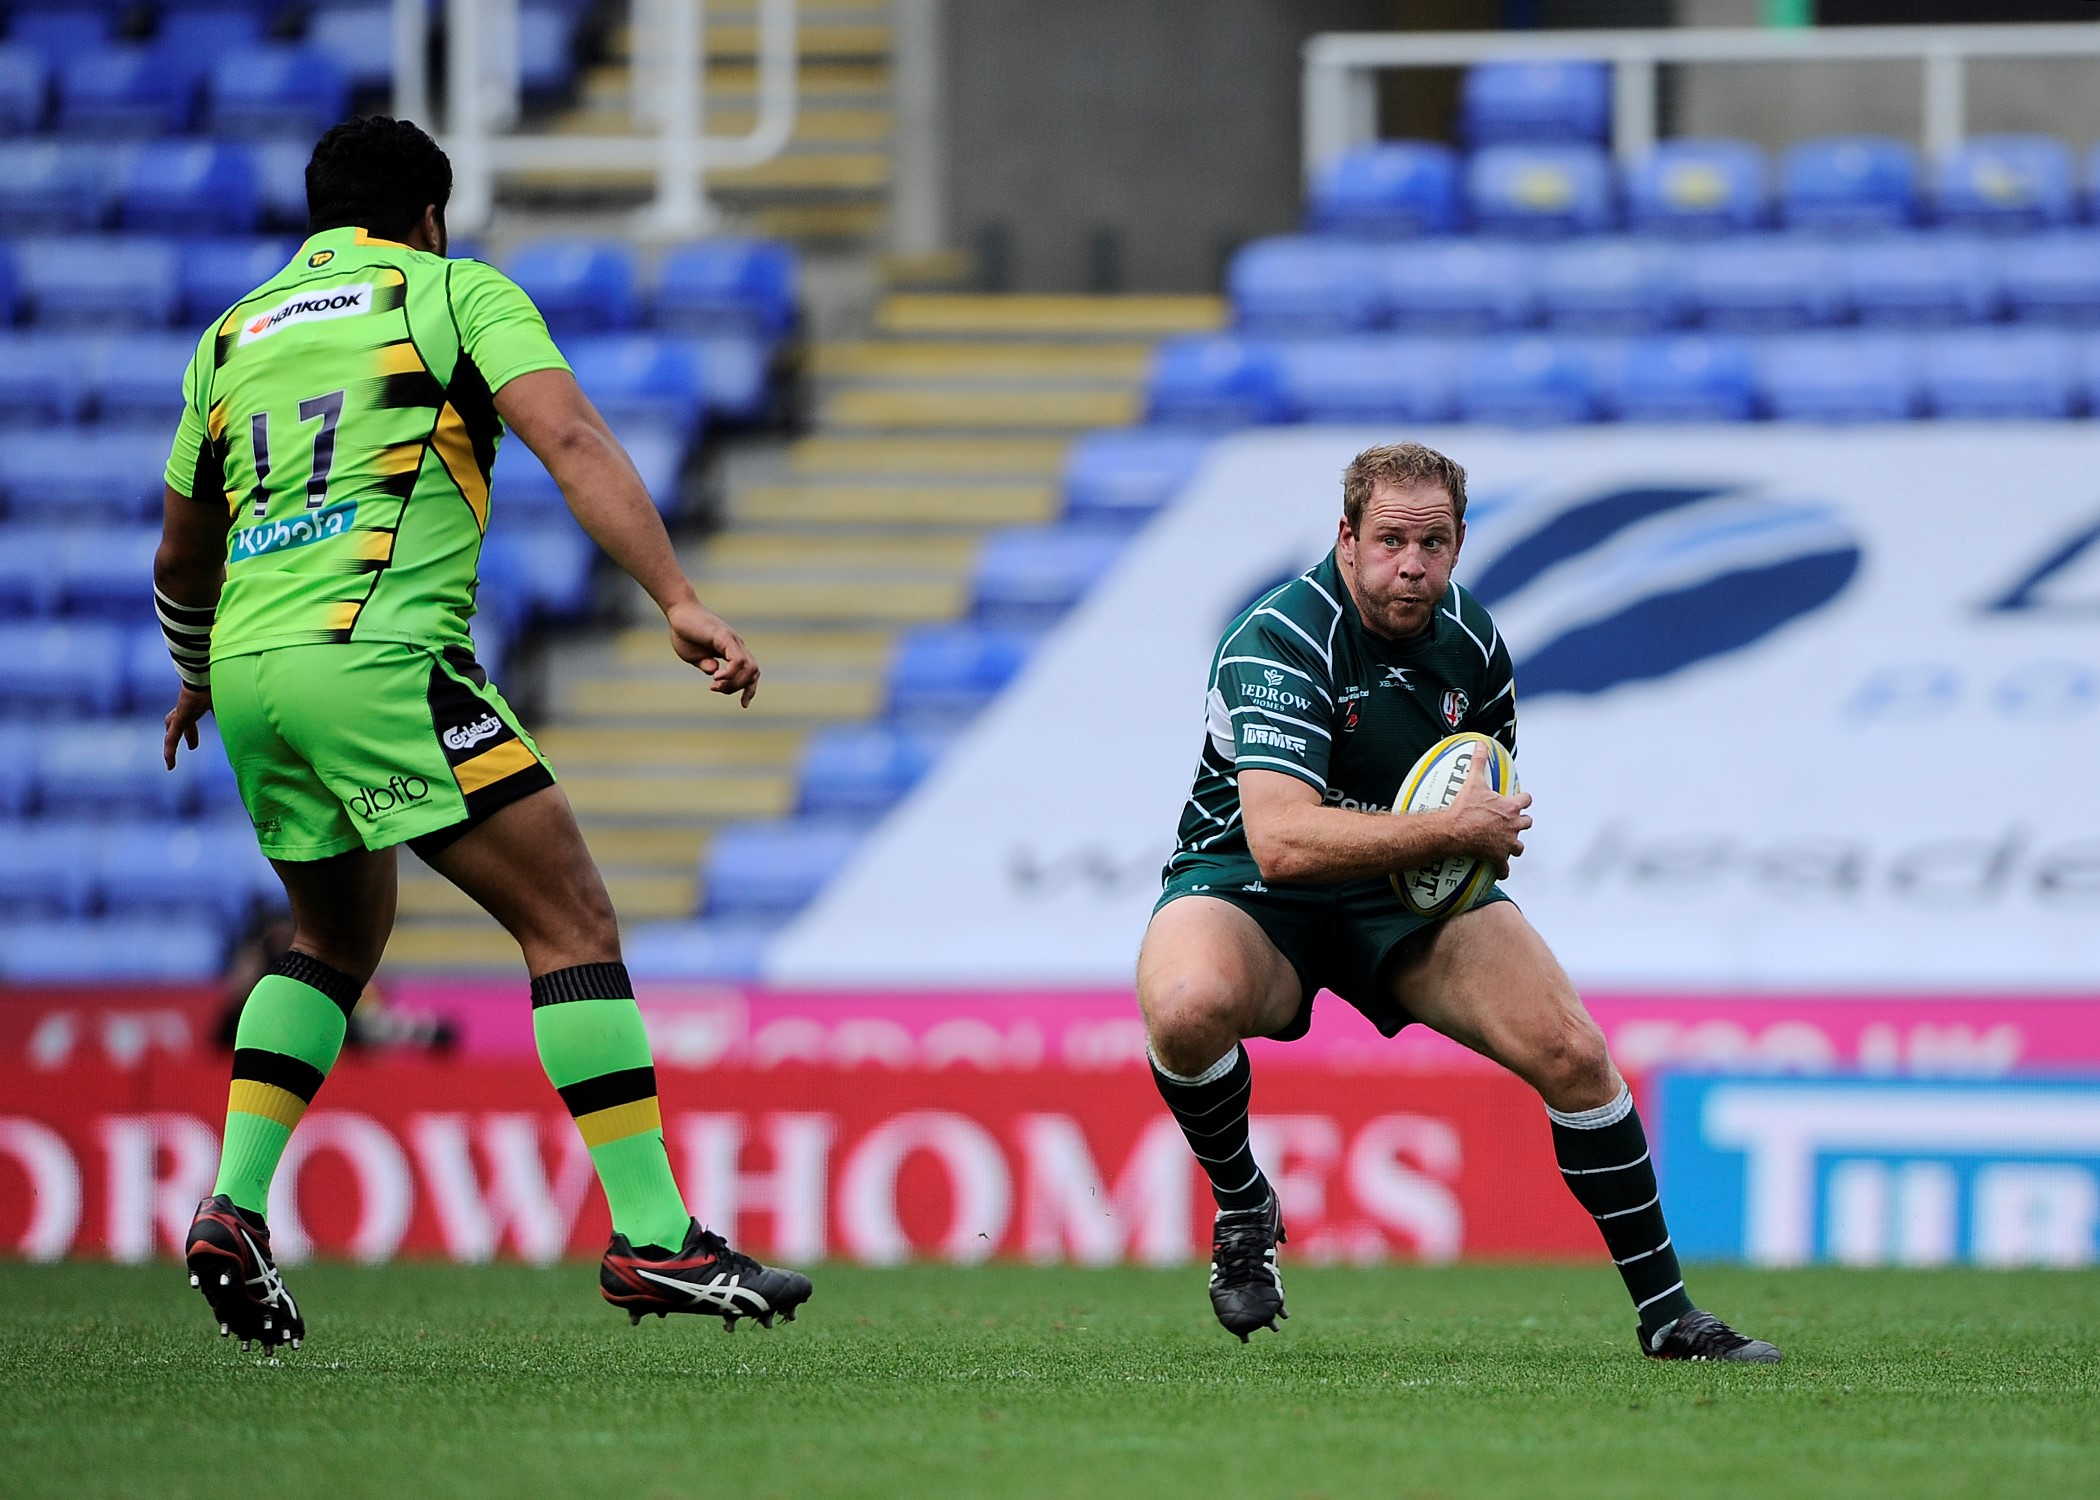 London Irish captain David Paice was sent off for an off the ball incident at Gloucester. Picture: David M.Moore.